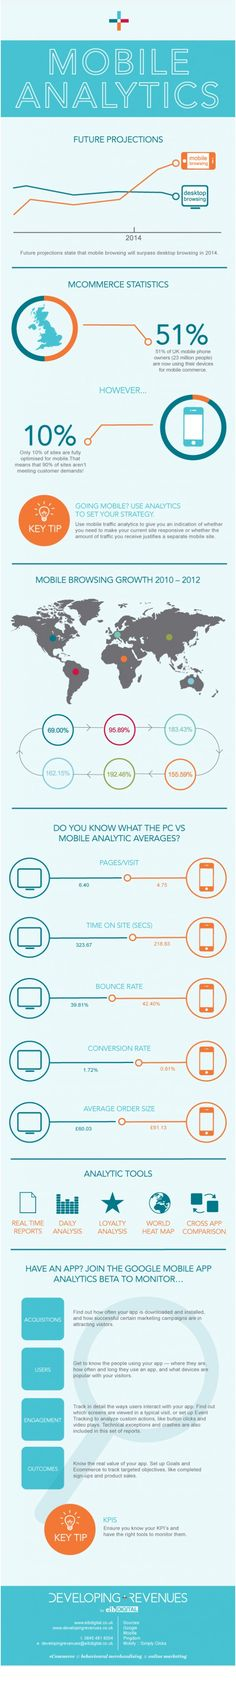 Mobile Analytics | Developing Revenues - eCommerce guides and infographics